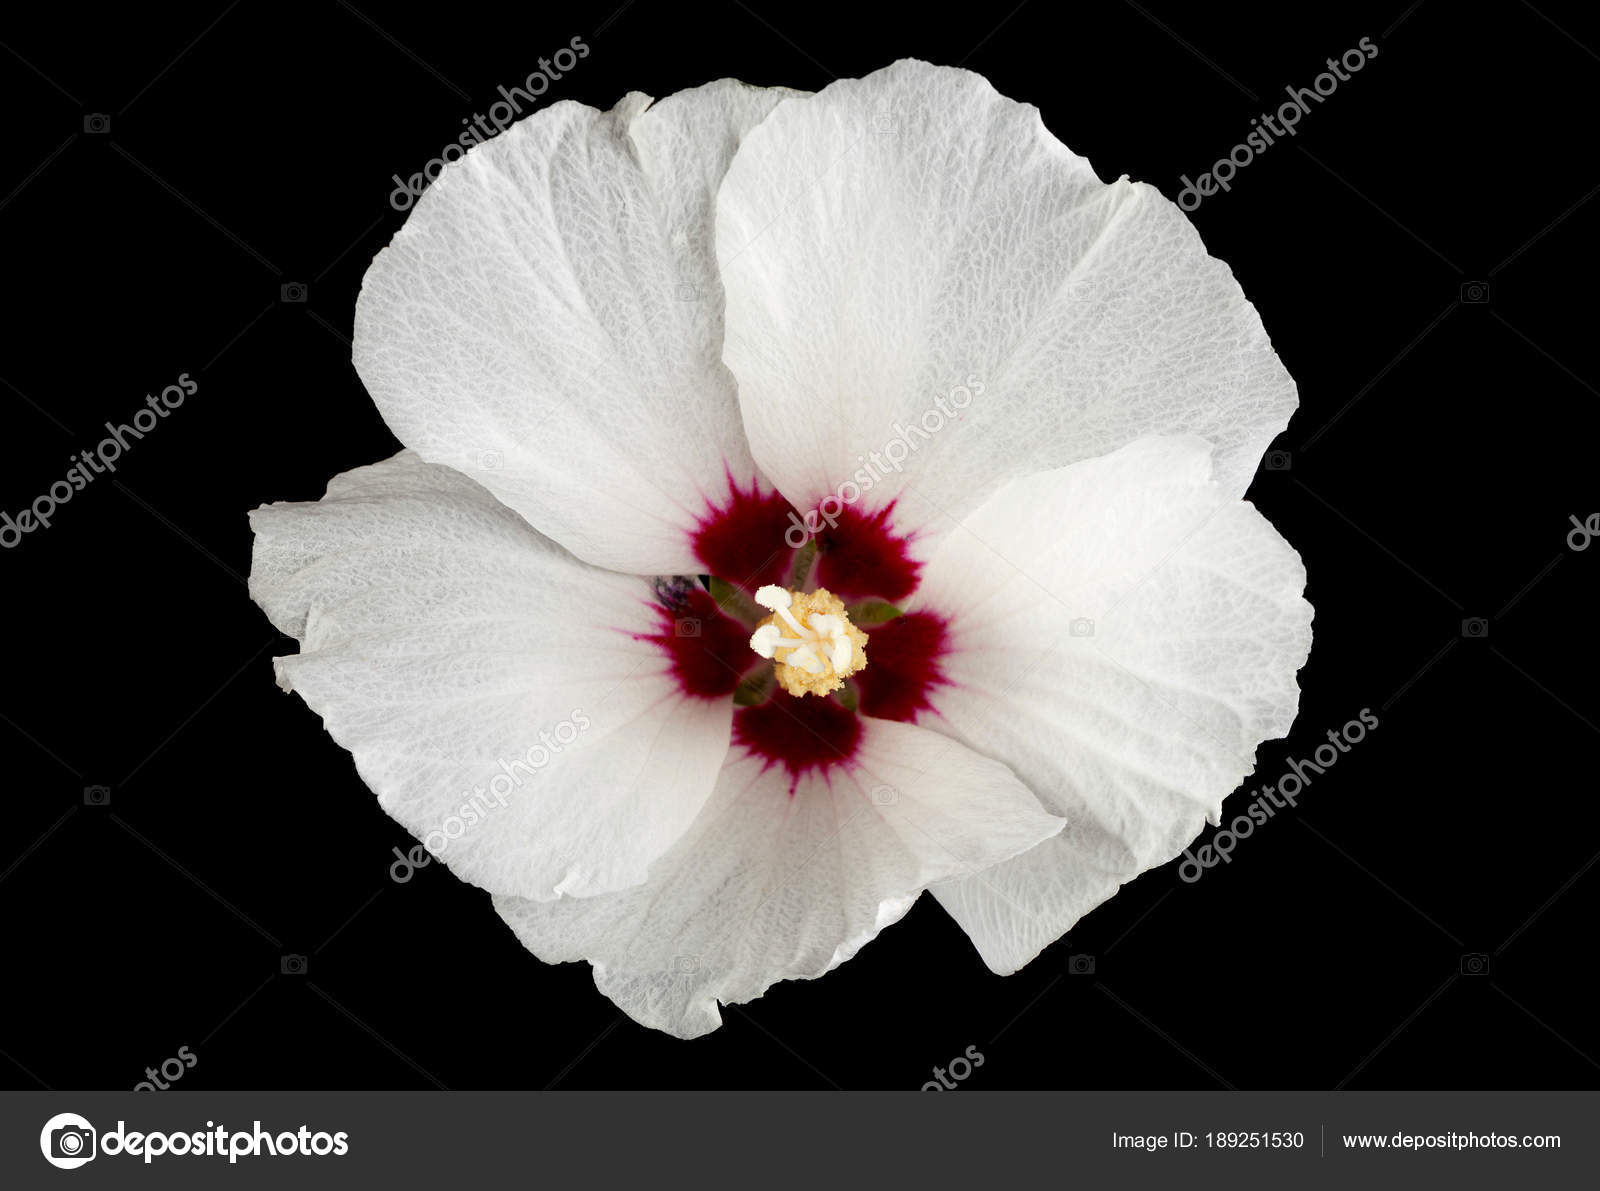 Hibiscus flower on black stock photo shance2018 189251530 hibiscus flower on black stock photo izmirmasajfo